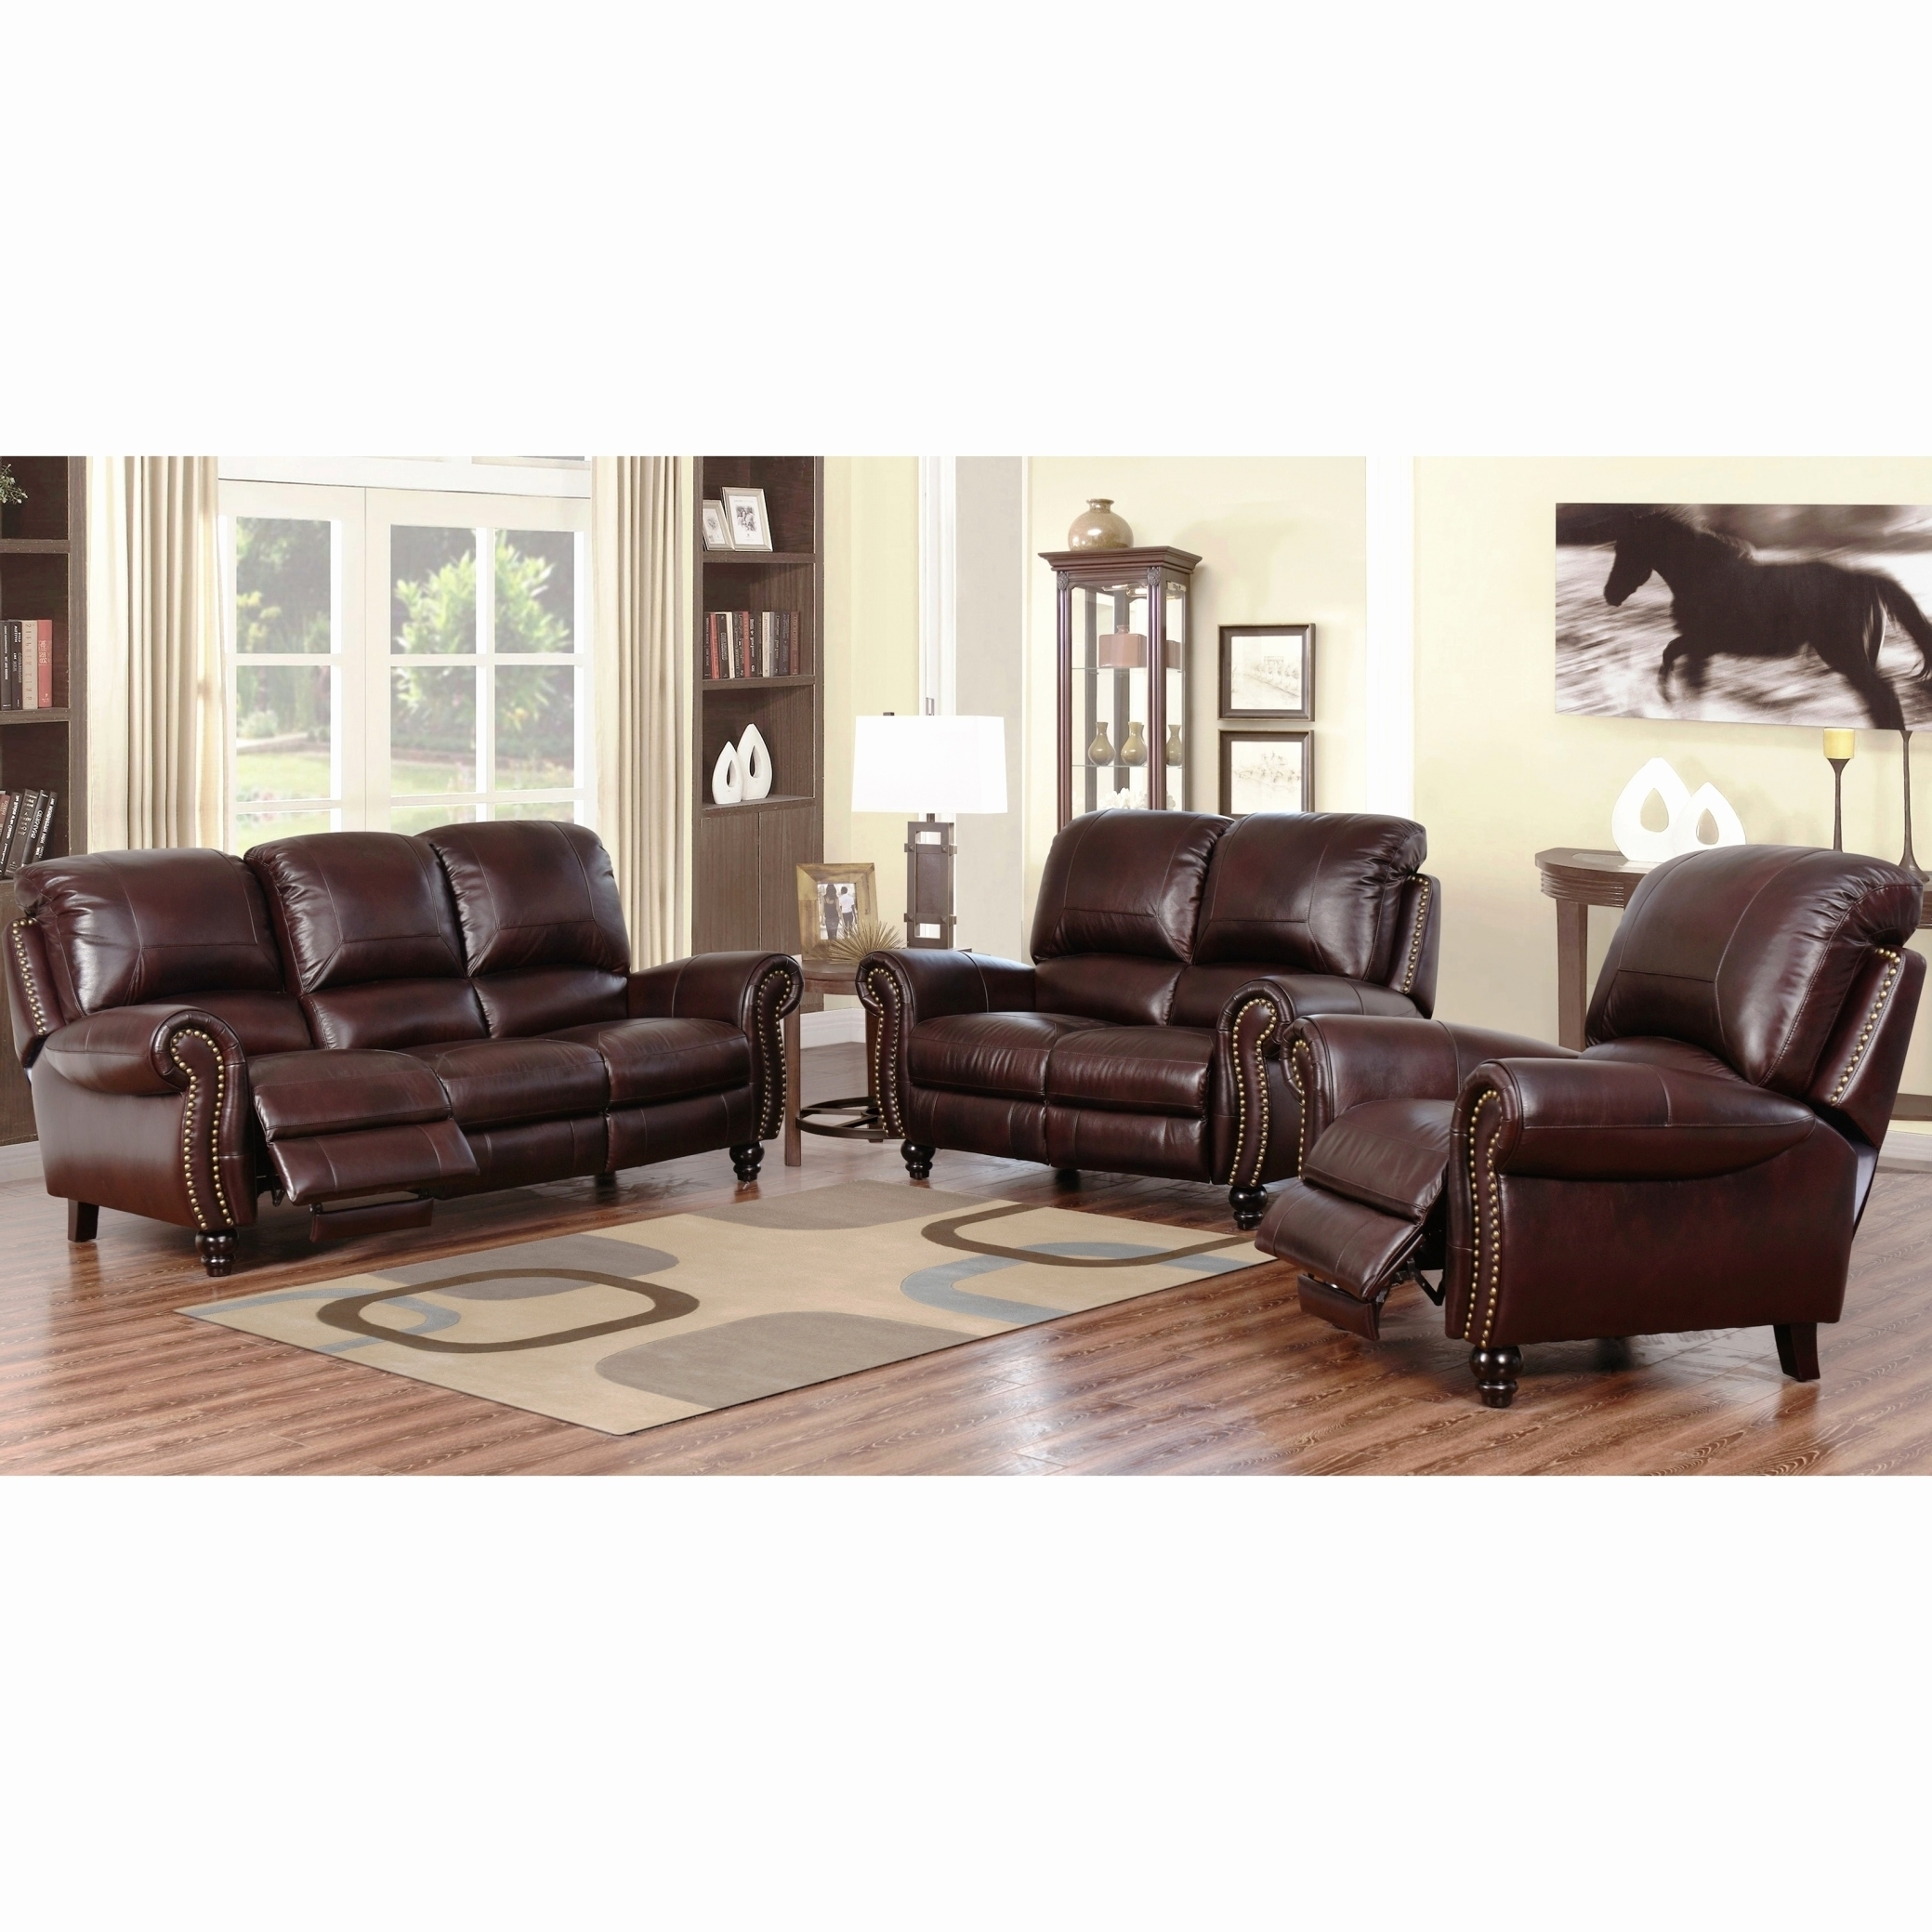 Preferred Overstock Sectional Sofas Regarding 32 Enchanting Overstock Sectional Sofas Pictures – Sectional Sofa (View 14 of 20)